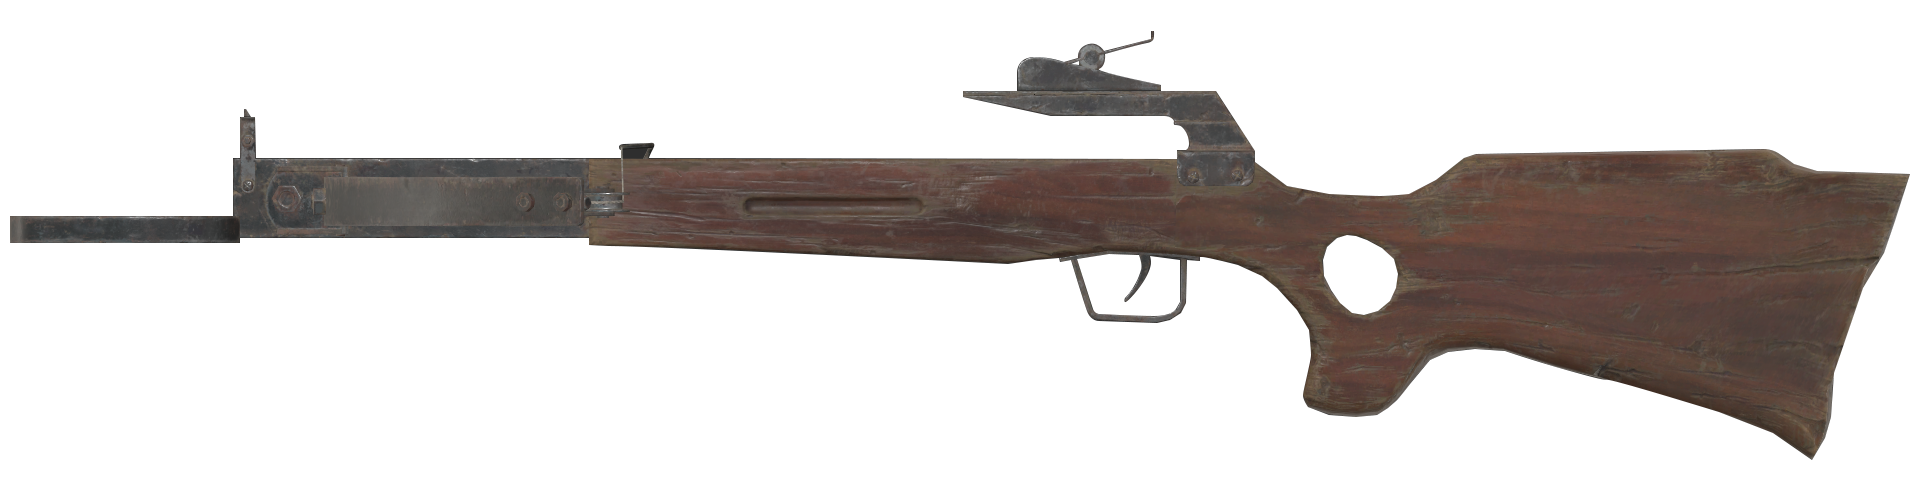 Crossbow (Fallout 76)